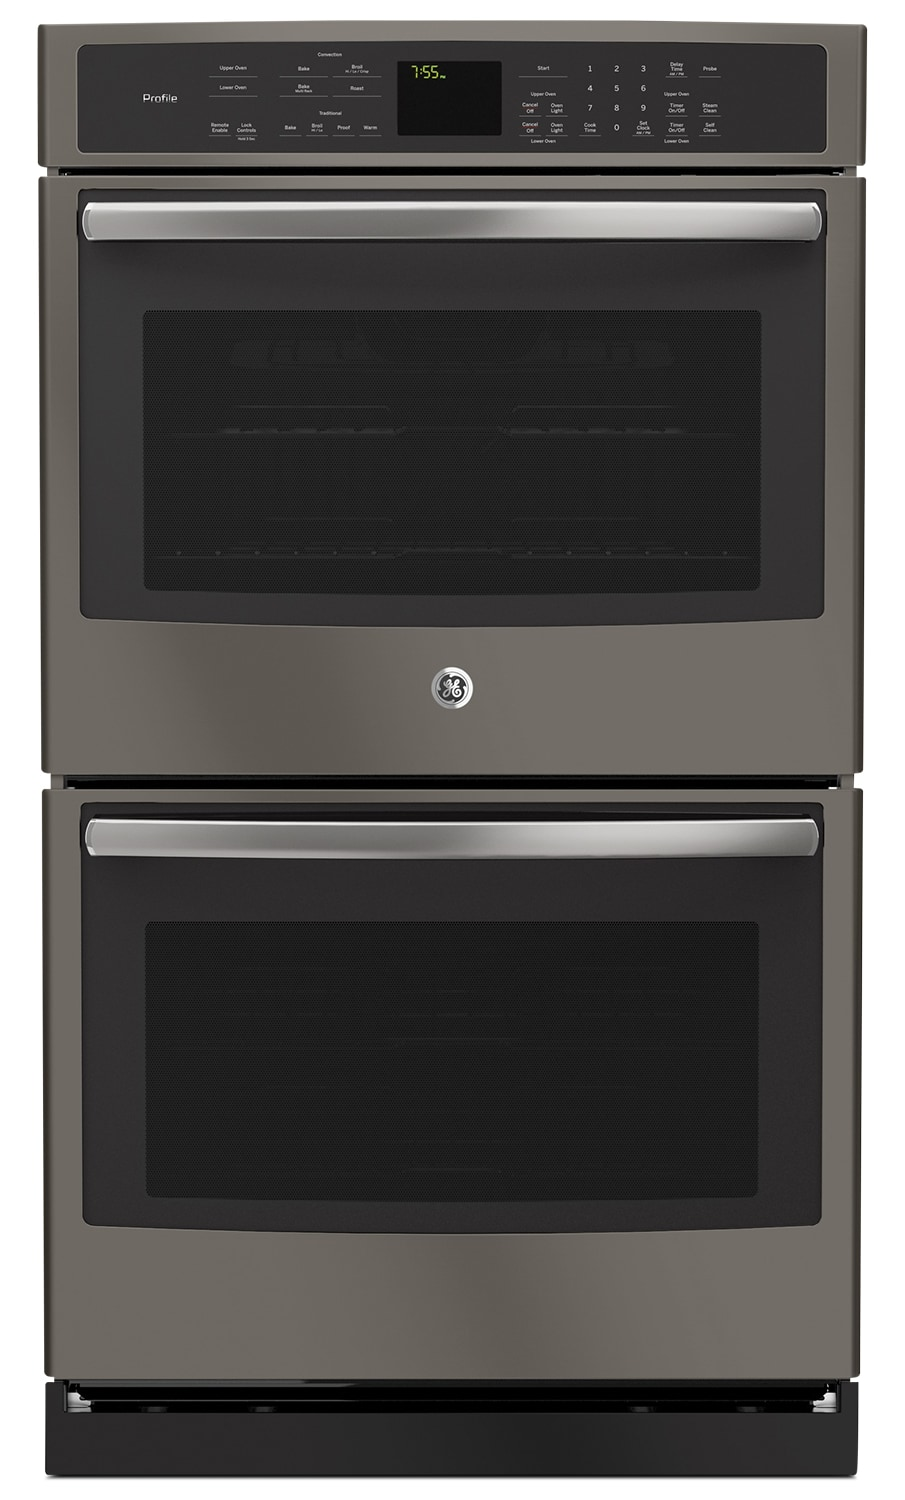 GE 10 Cu. Ft. Double Wall Oven – PT7550EHES